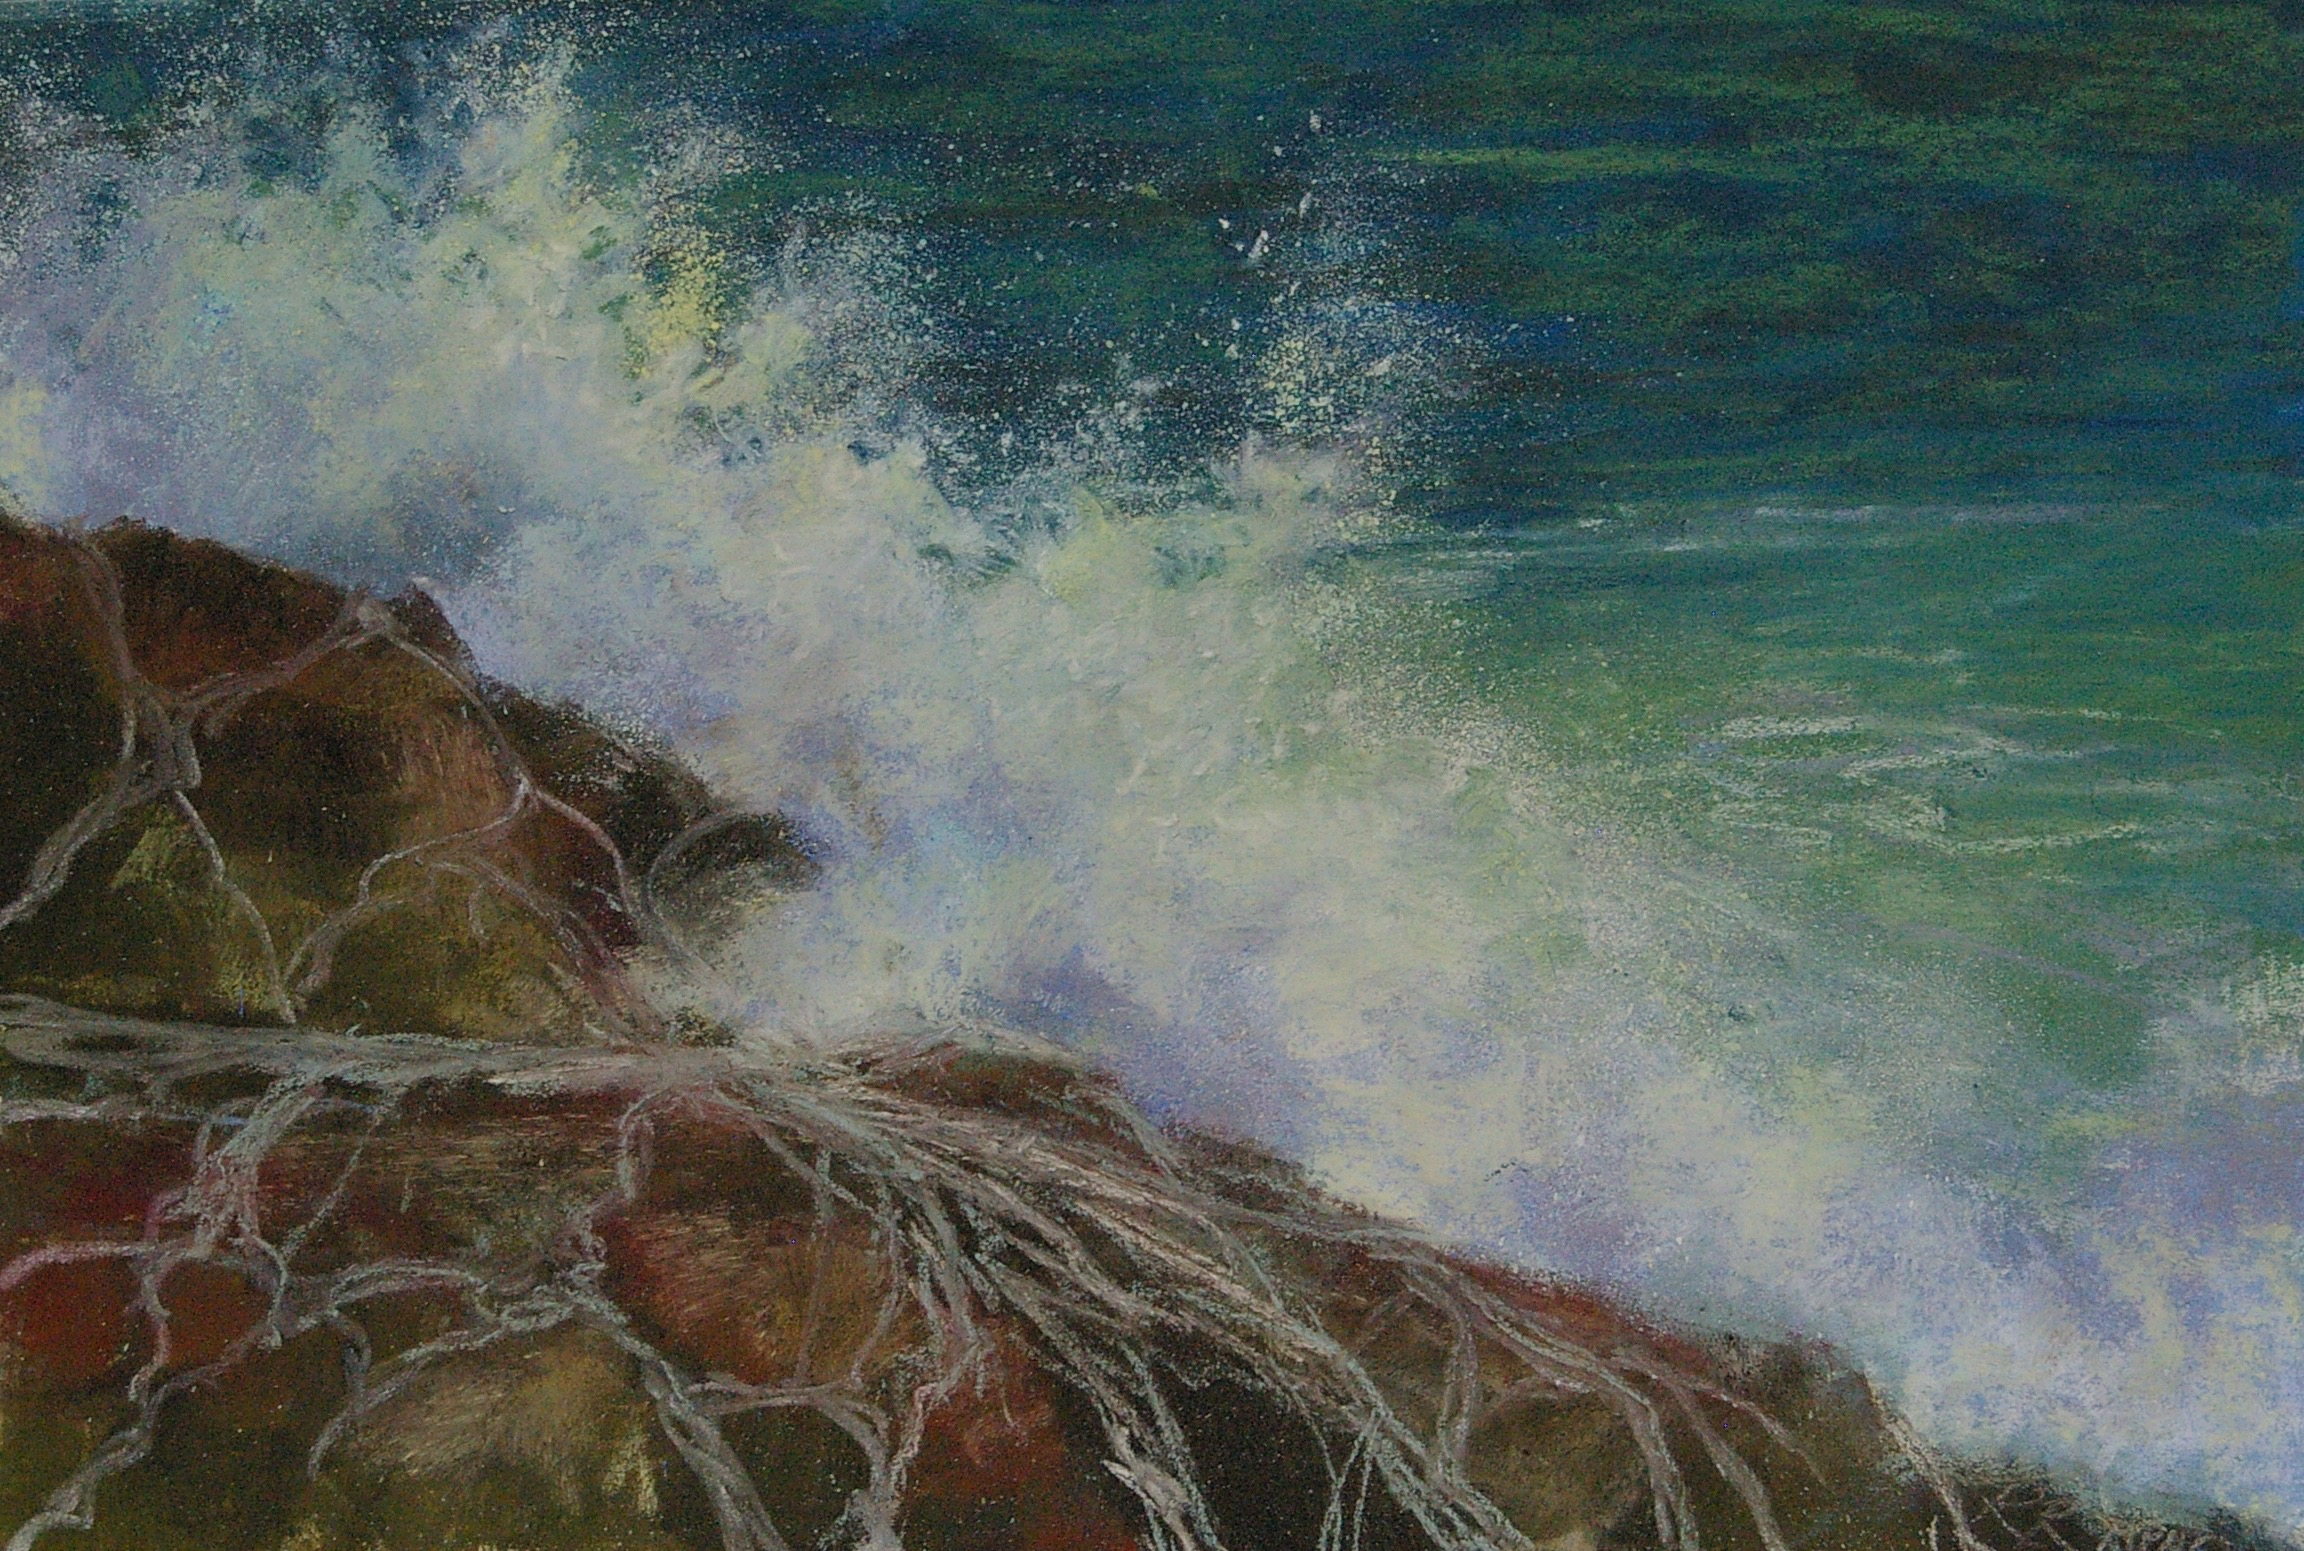 Rock & Splash, pastel on paper, 13 x 20, framed with museum glass, $550